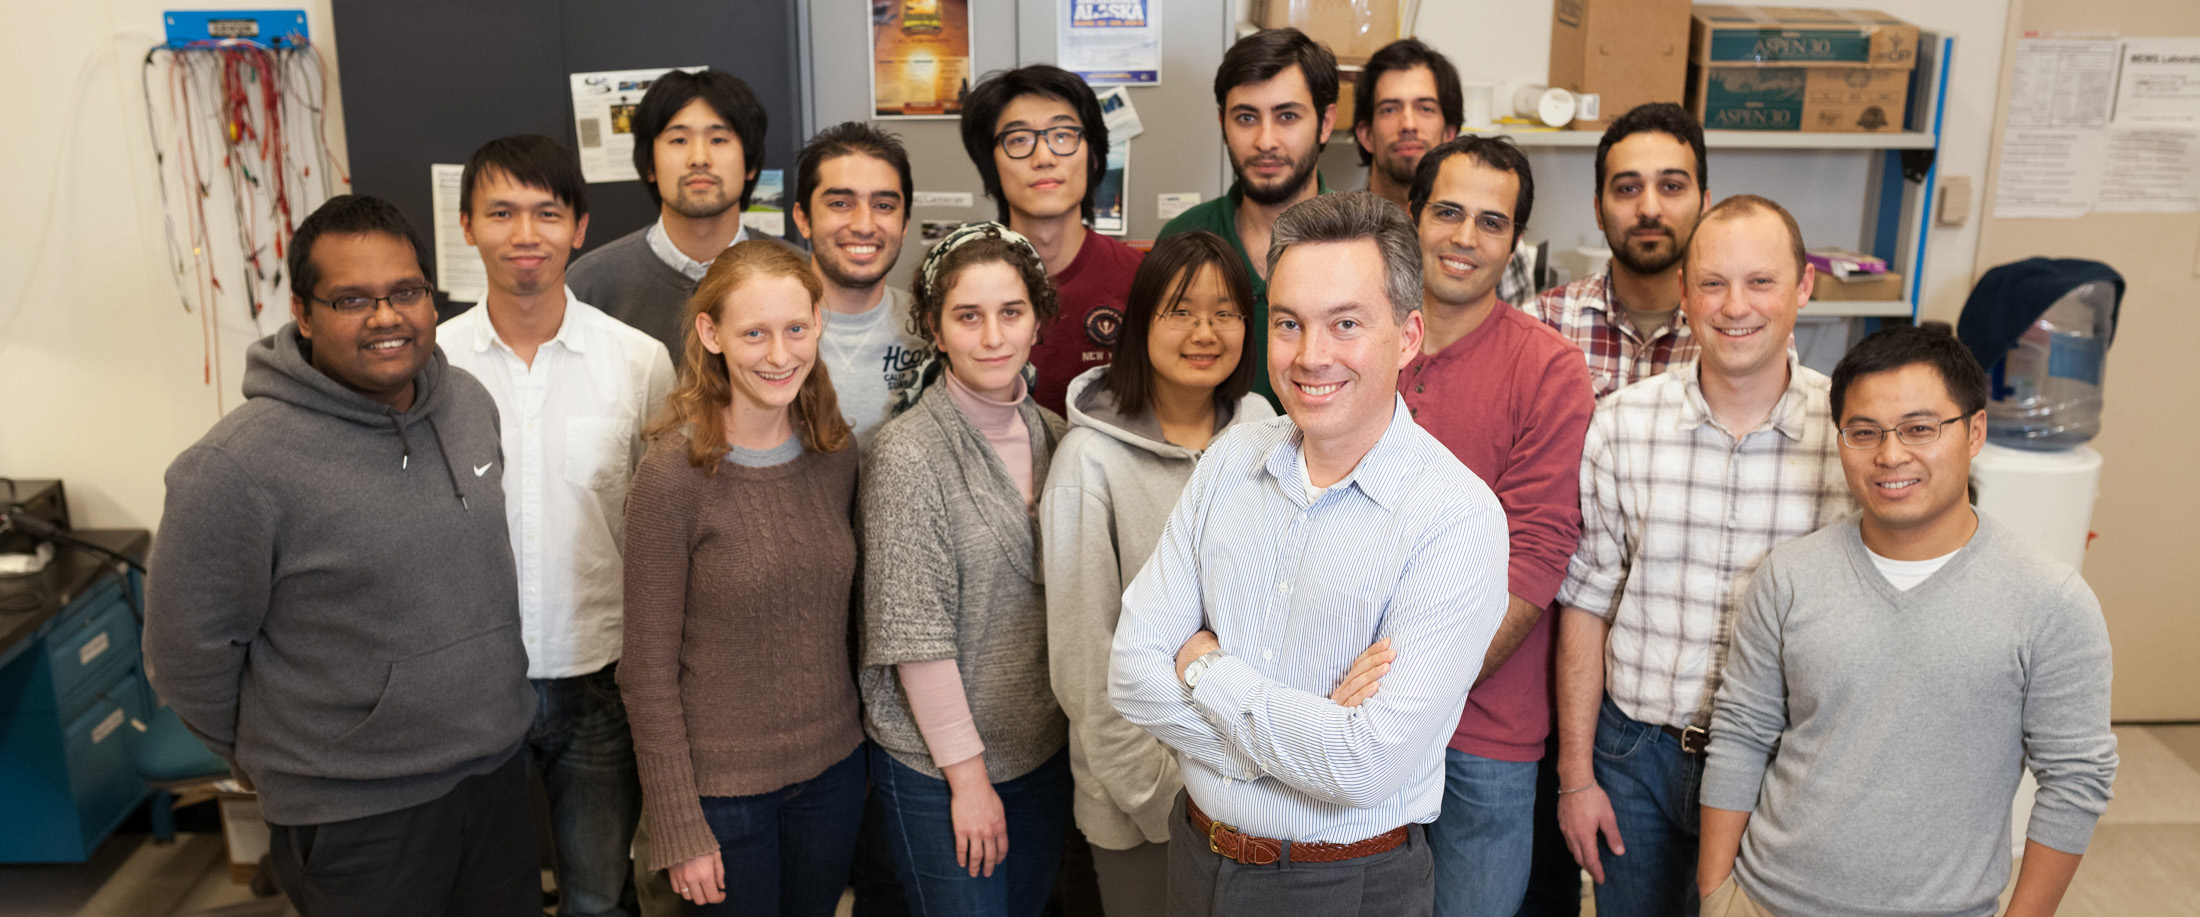 UC Davis MEMS Lab 2013 Group Photo